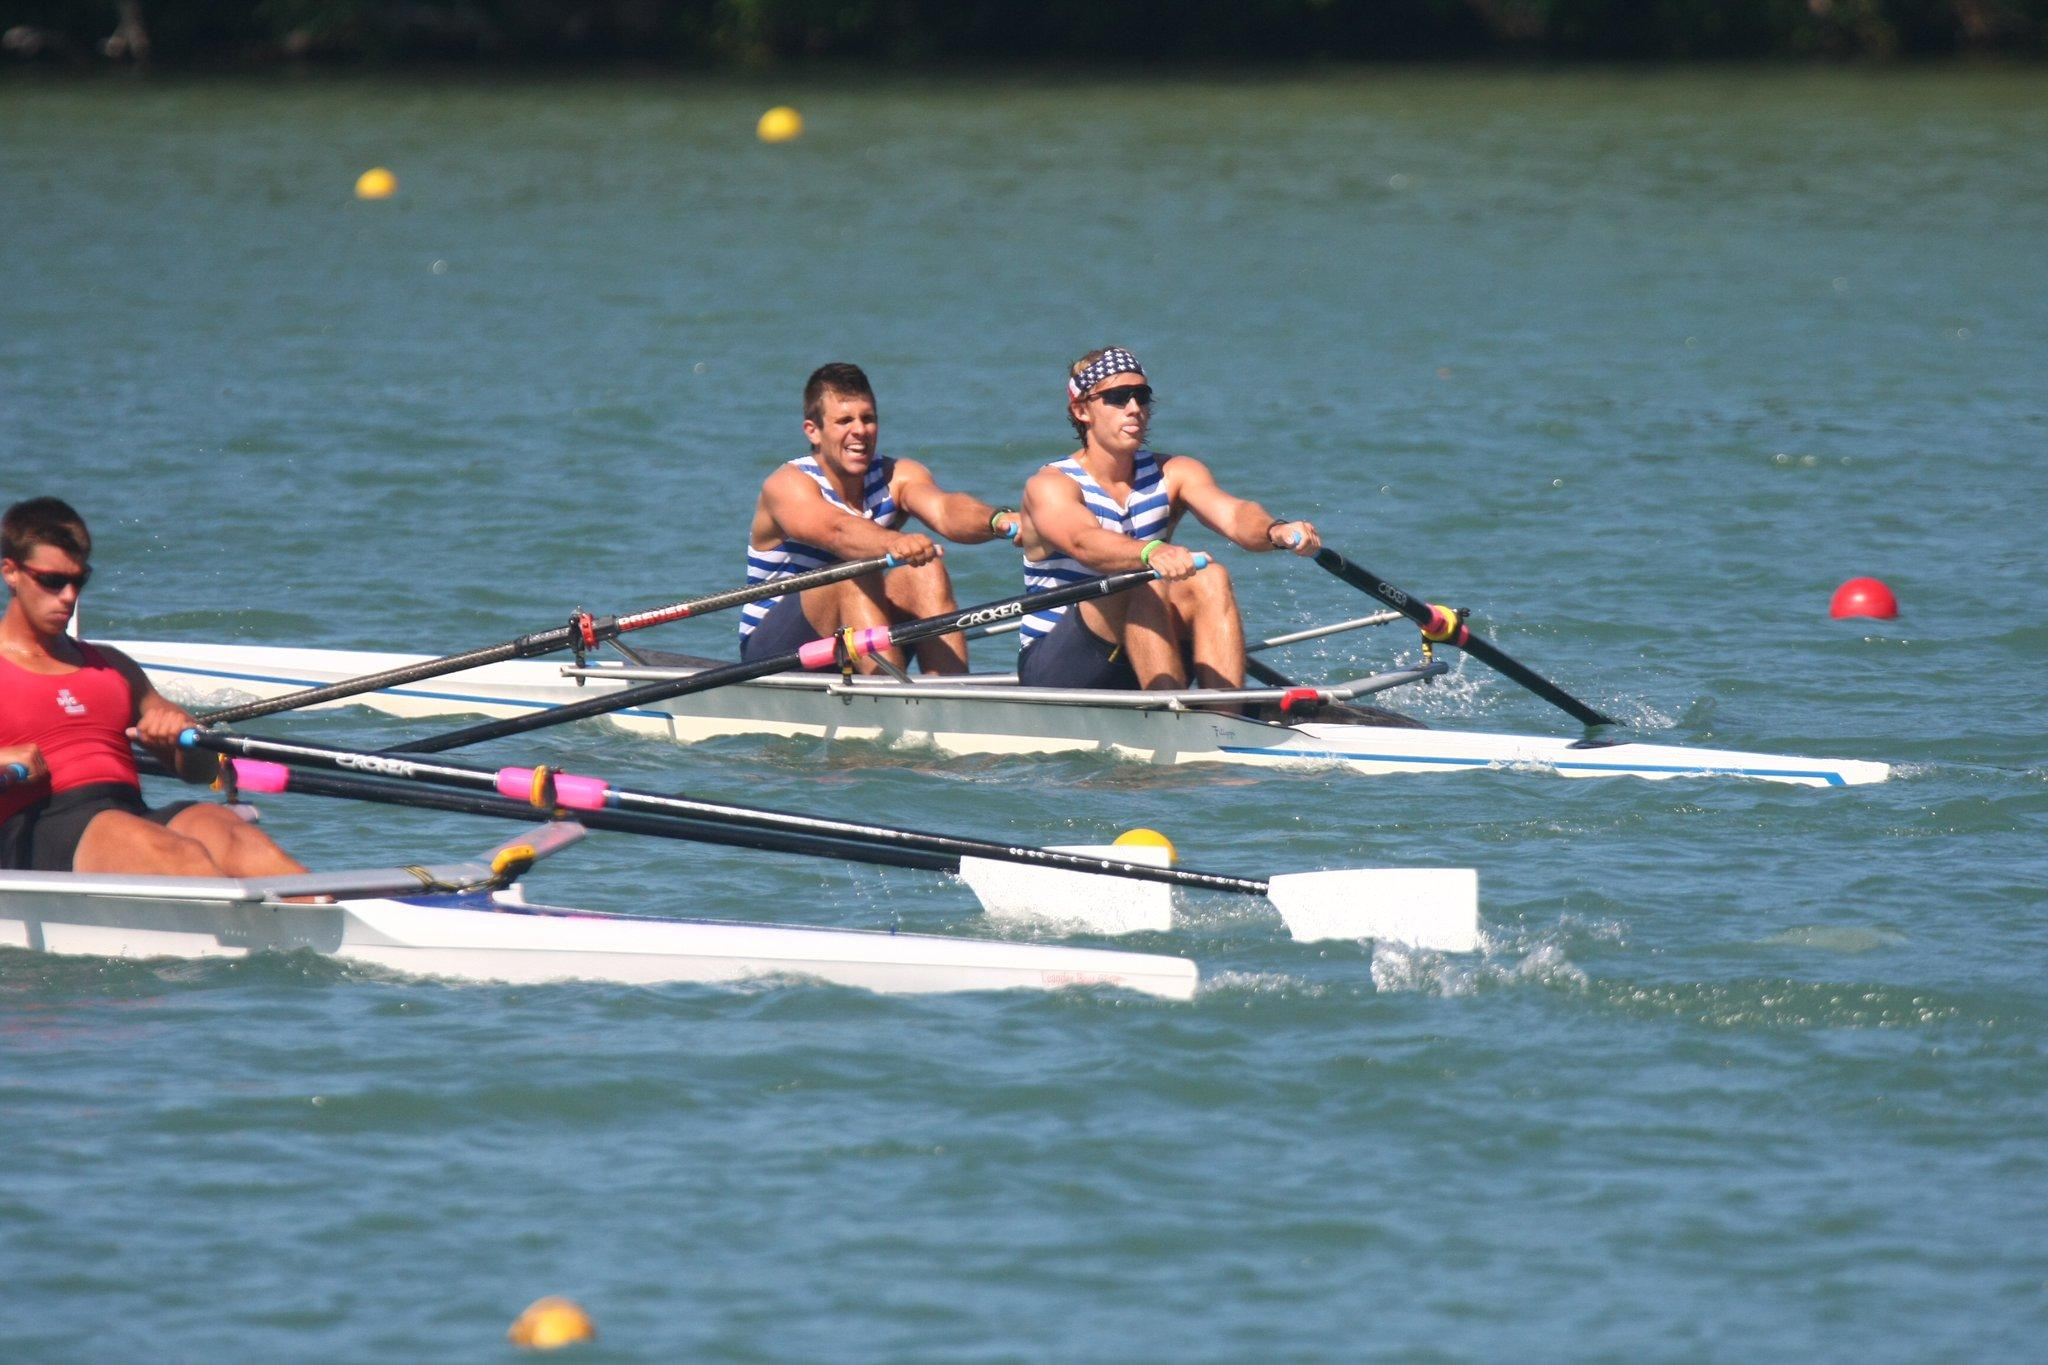 Sayles (Stroke seat) in 2011 at Canadian Henley.